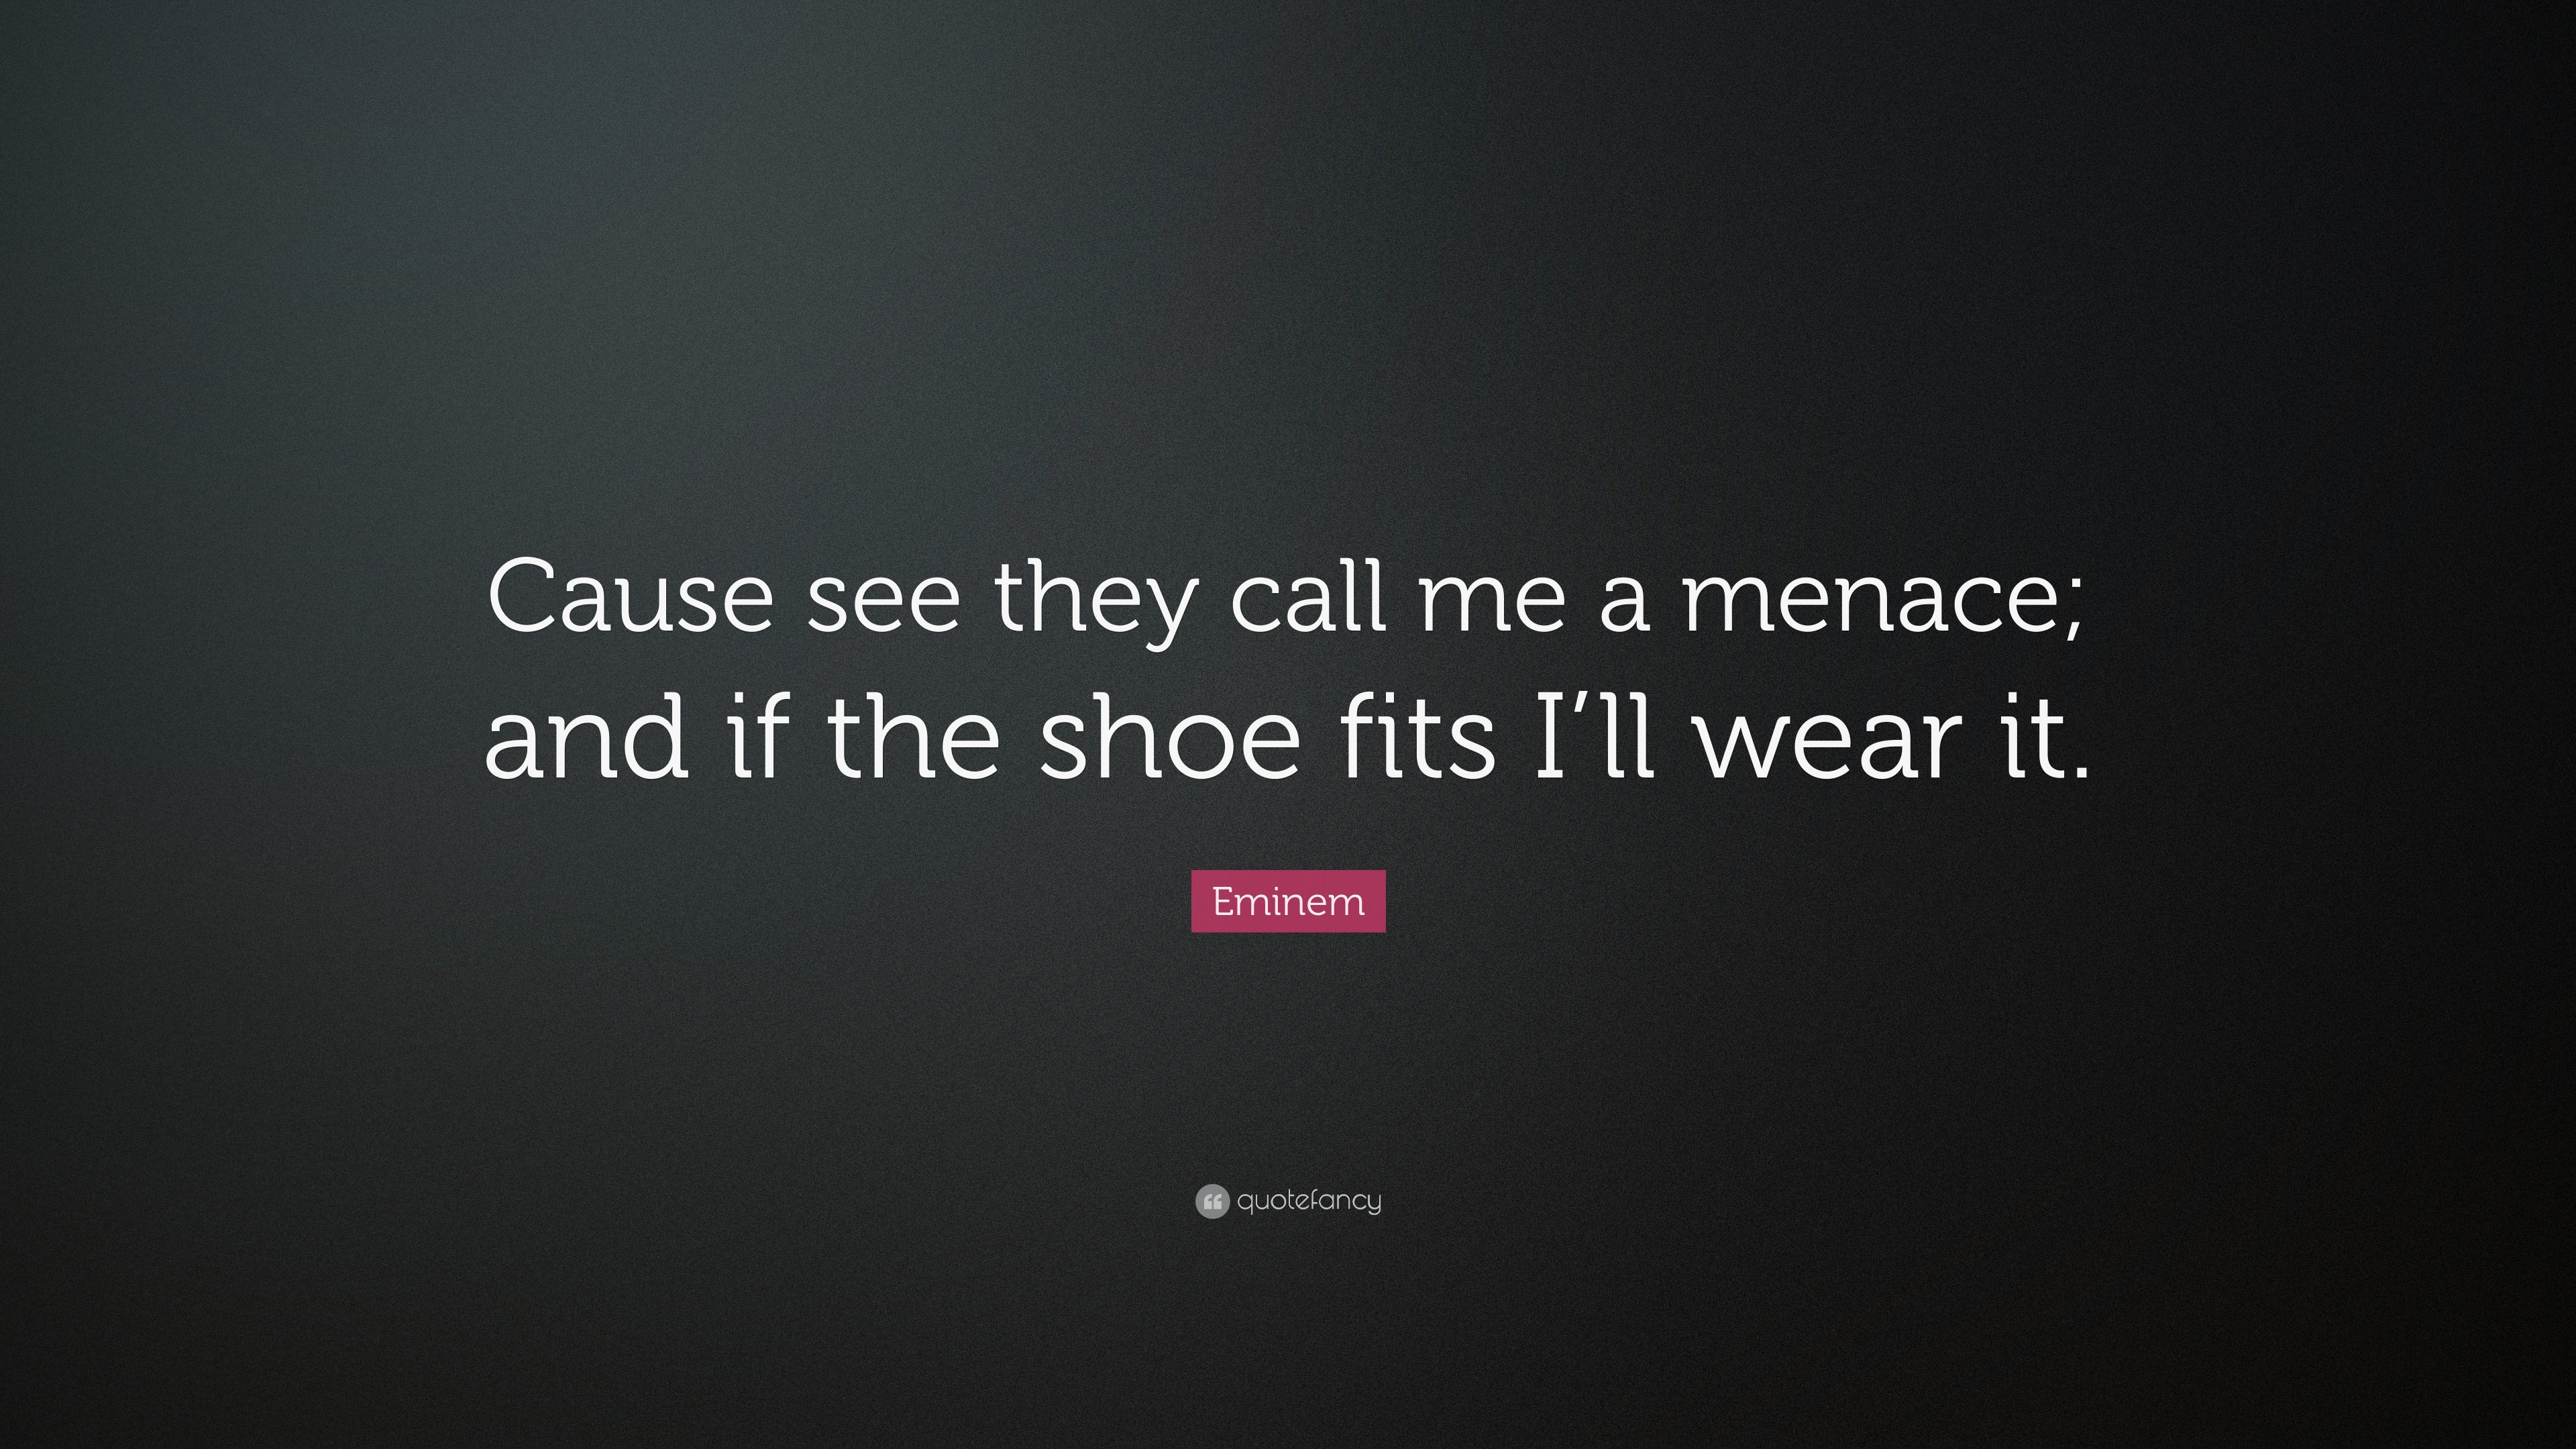 Eminem Quote Cause See They Call Me A Menace And If The Shoe Fits